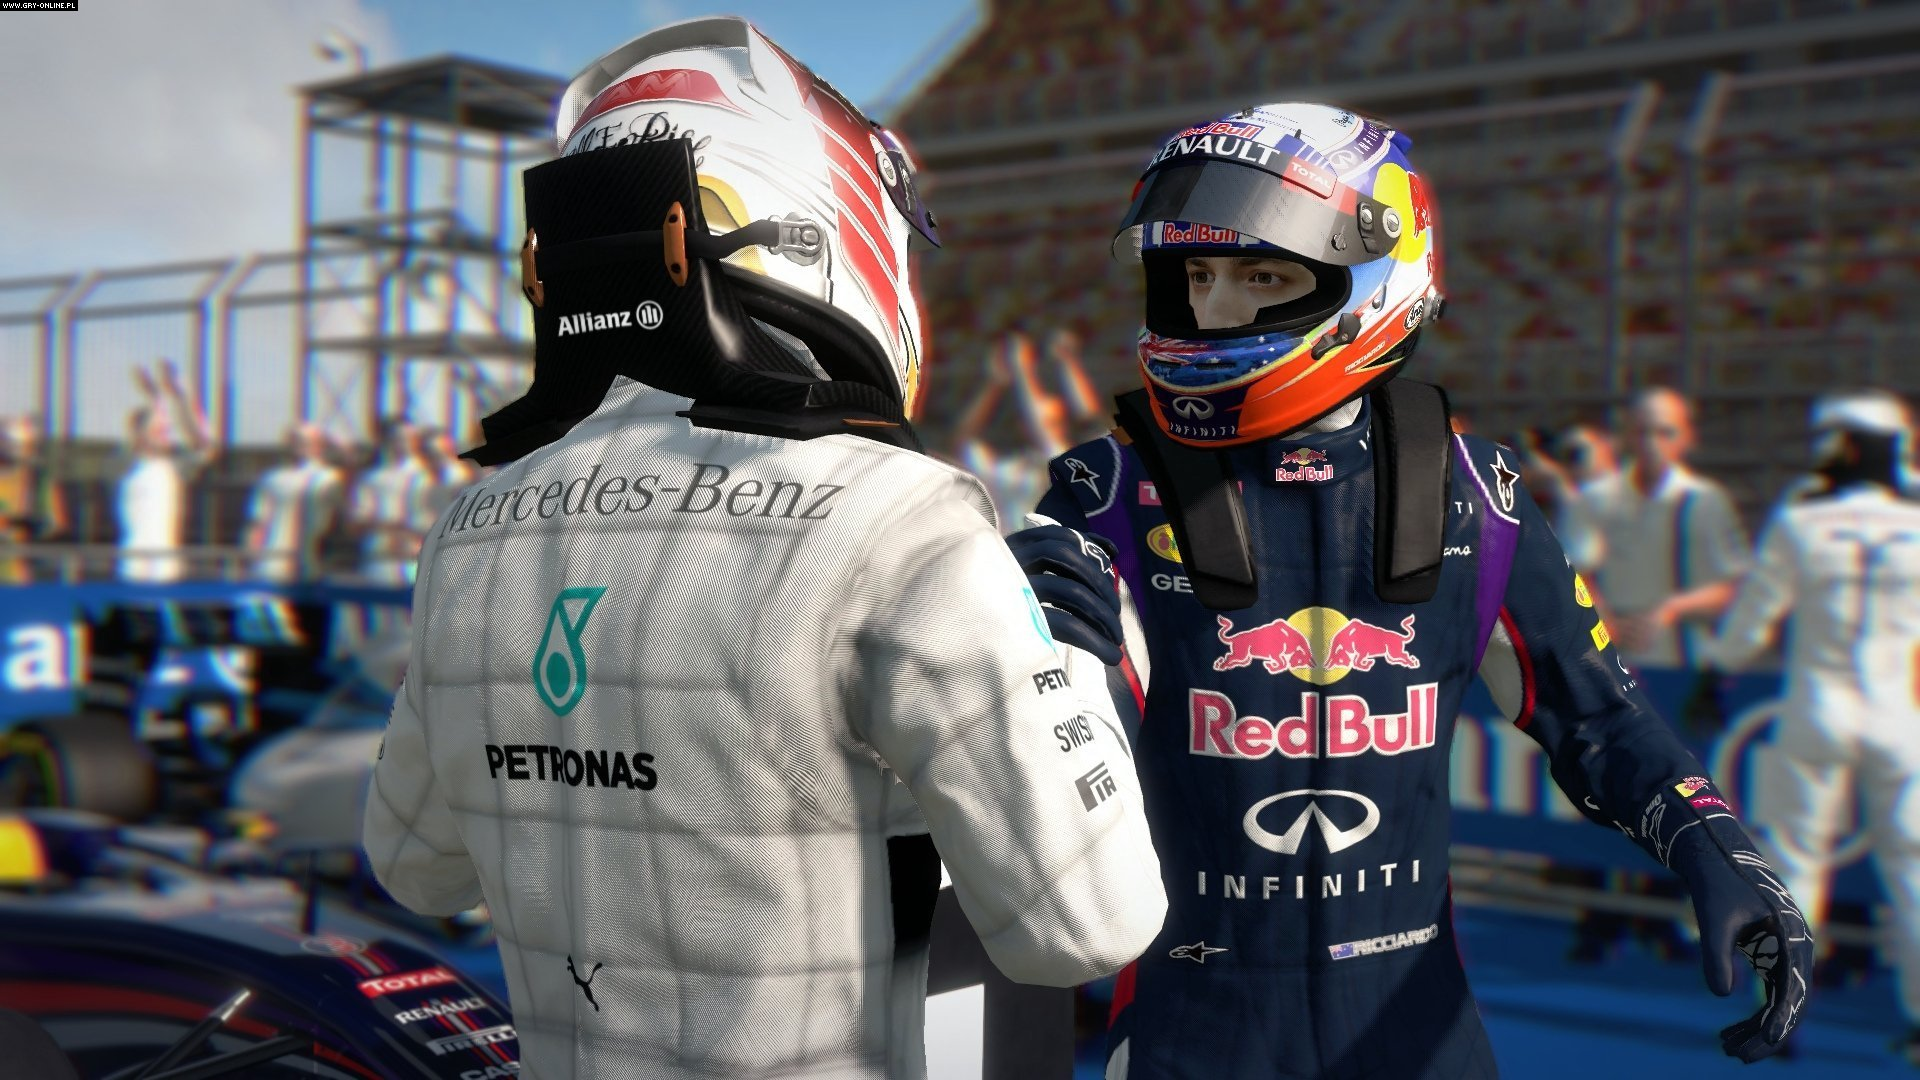 F1 2014 PC, X360, PS3 Gry Screen 3/18, Codemasters Software